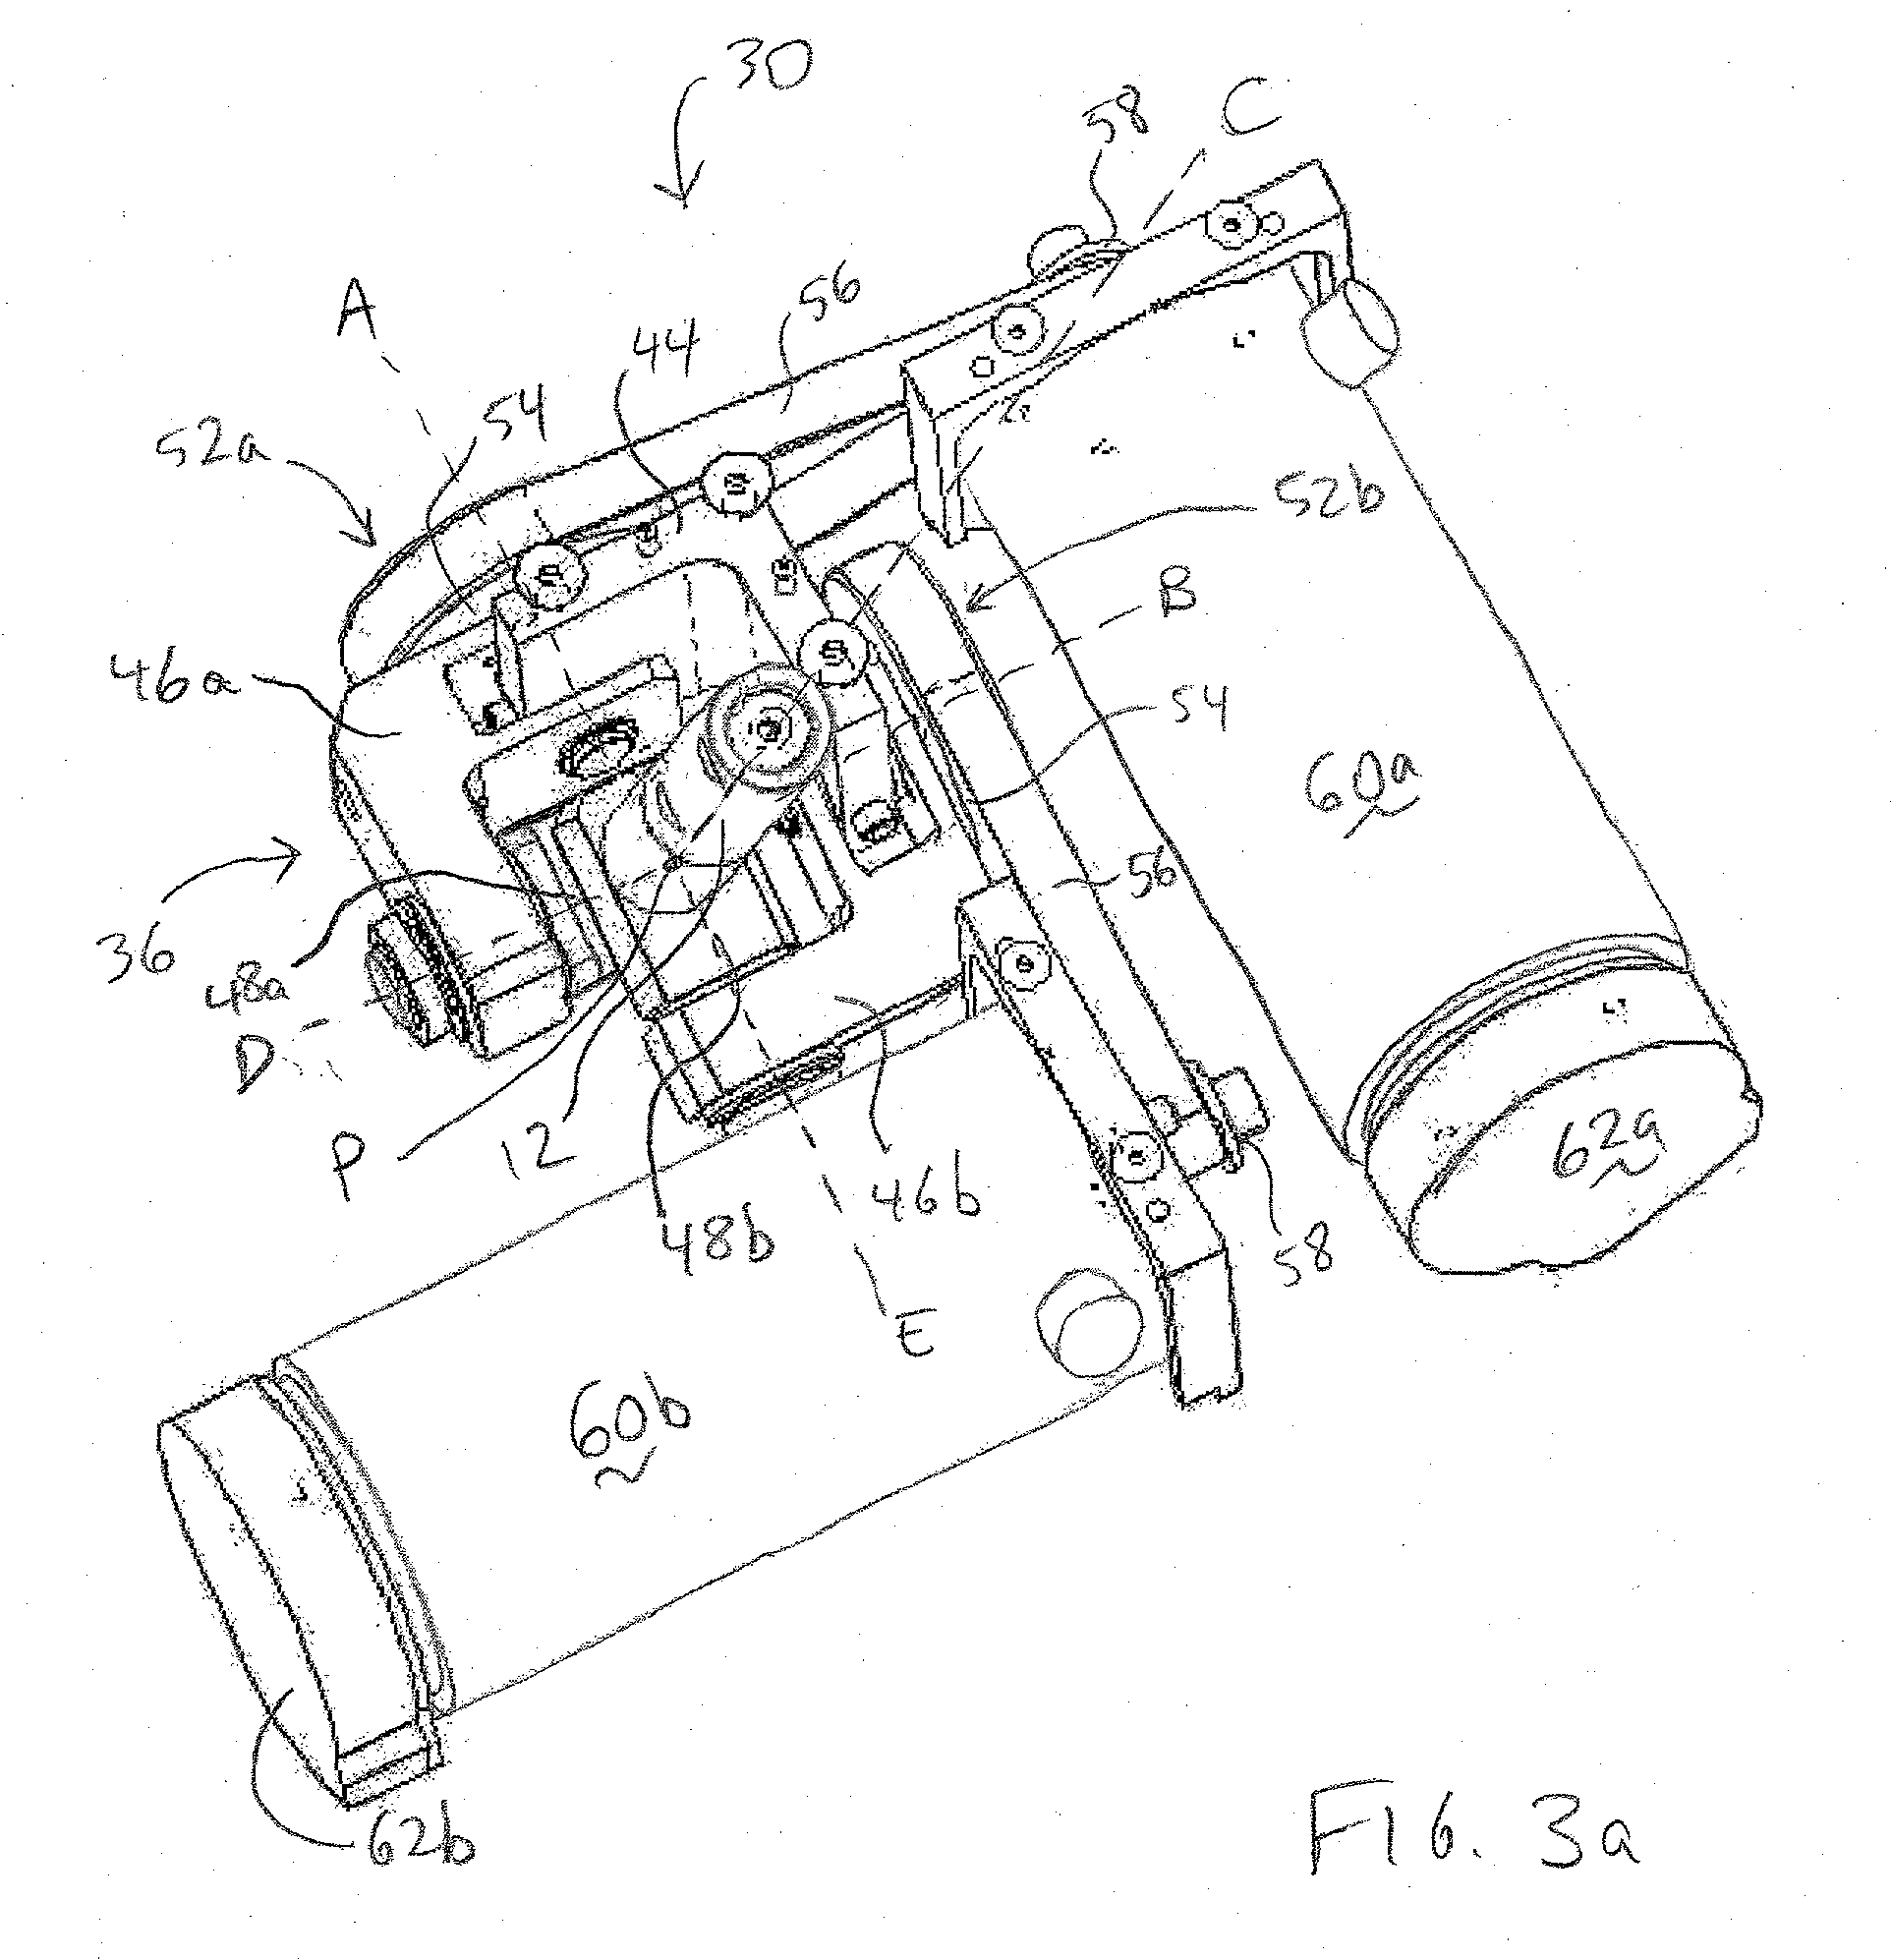 US6904823 further Direct Shift Gearbox furthermore P 0900c15280261c68 together with US20030188594 furthermore Schematics h. on sequential manual transmission